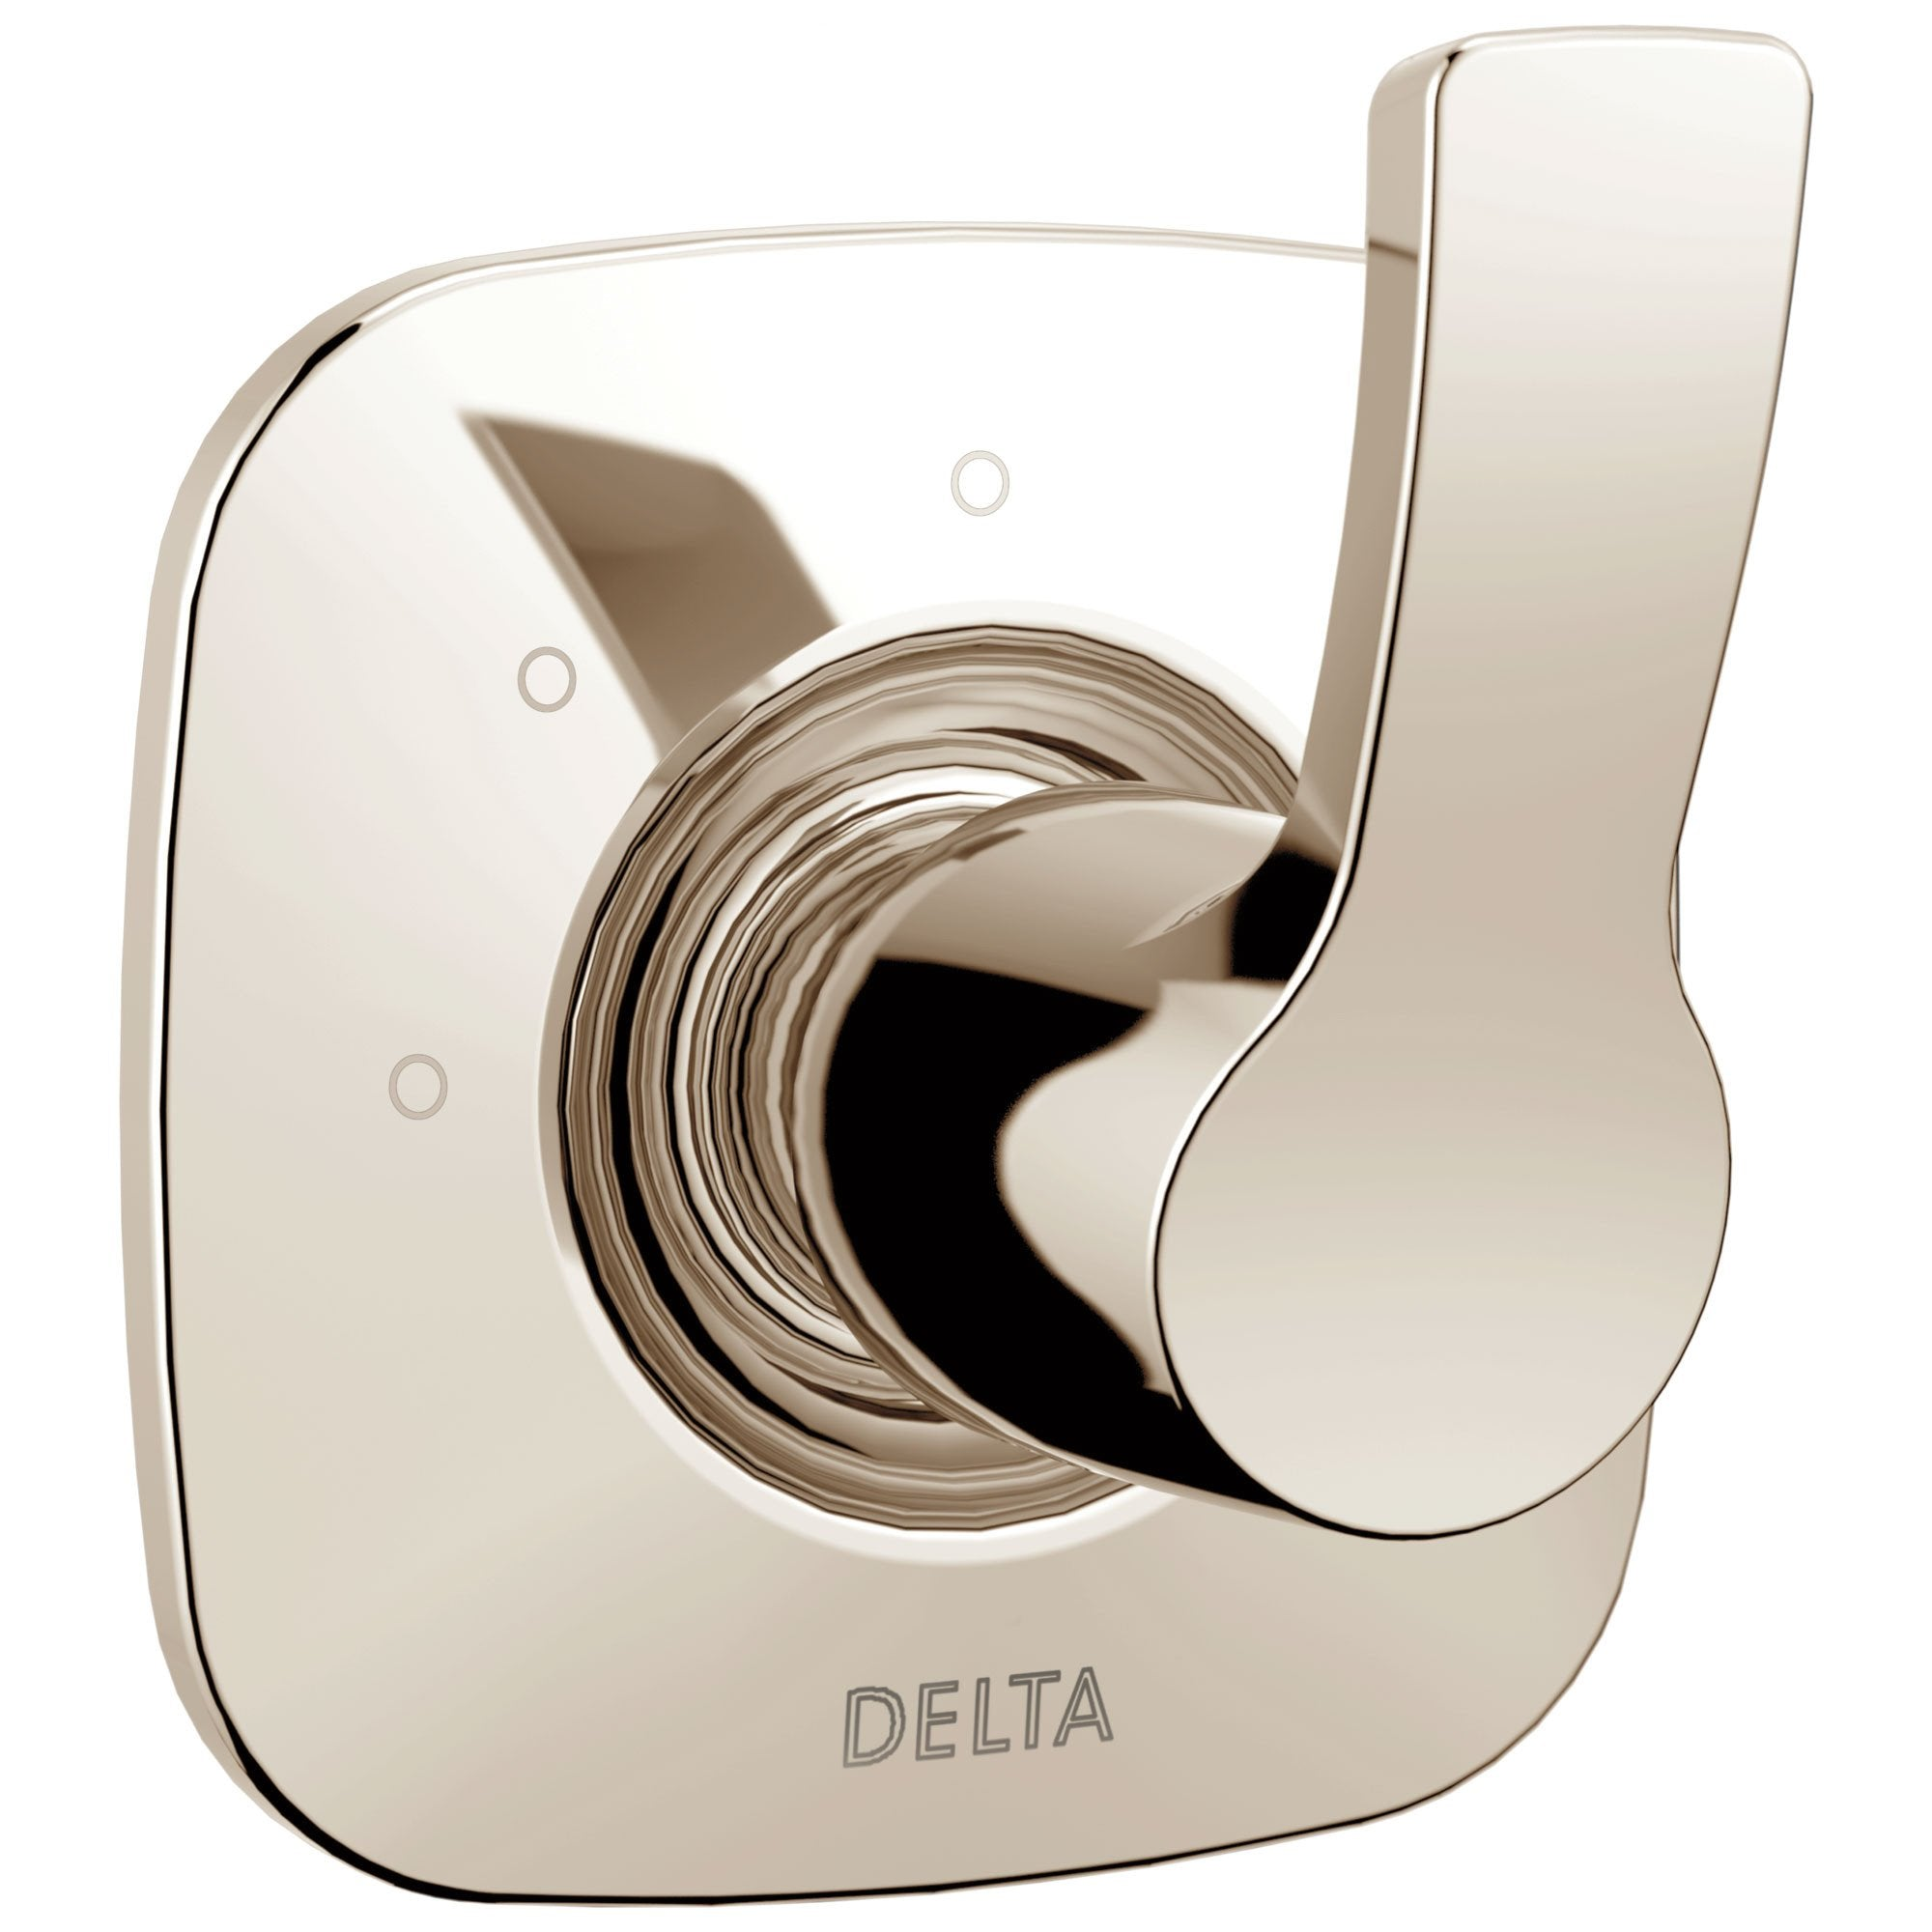 Delta Tesla Collection Polished Nickel Finish Modern 3-Setting 2-Port Single Handle Shower Diverter Trim Kit (Valve Sold Separately) 732796